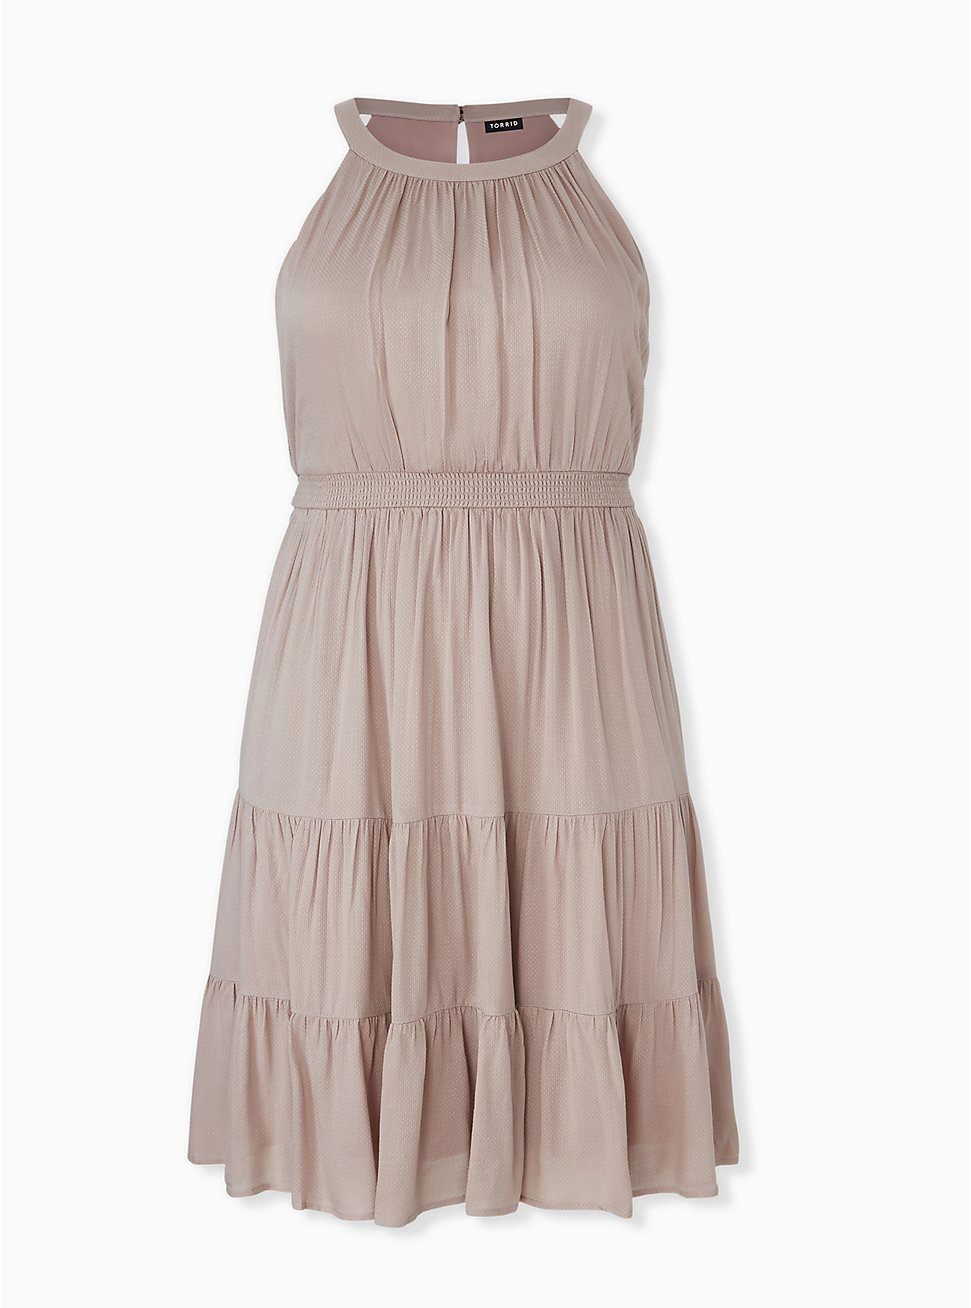 Taupe Textured Tiered Skater Dress, FAWN, hi-res